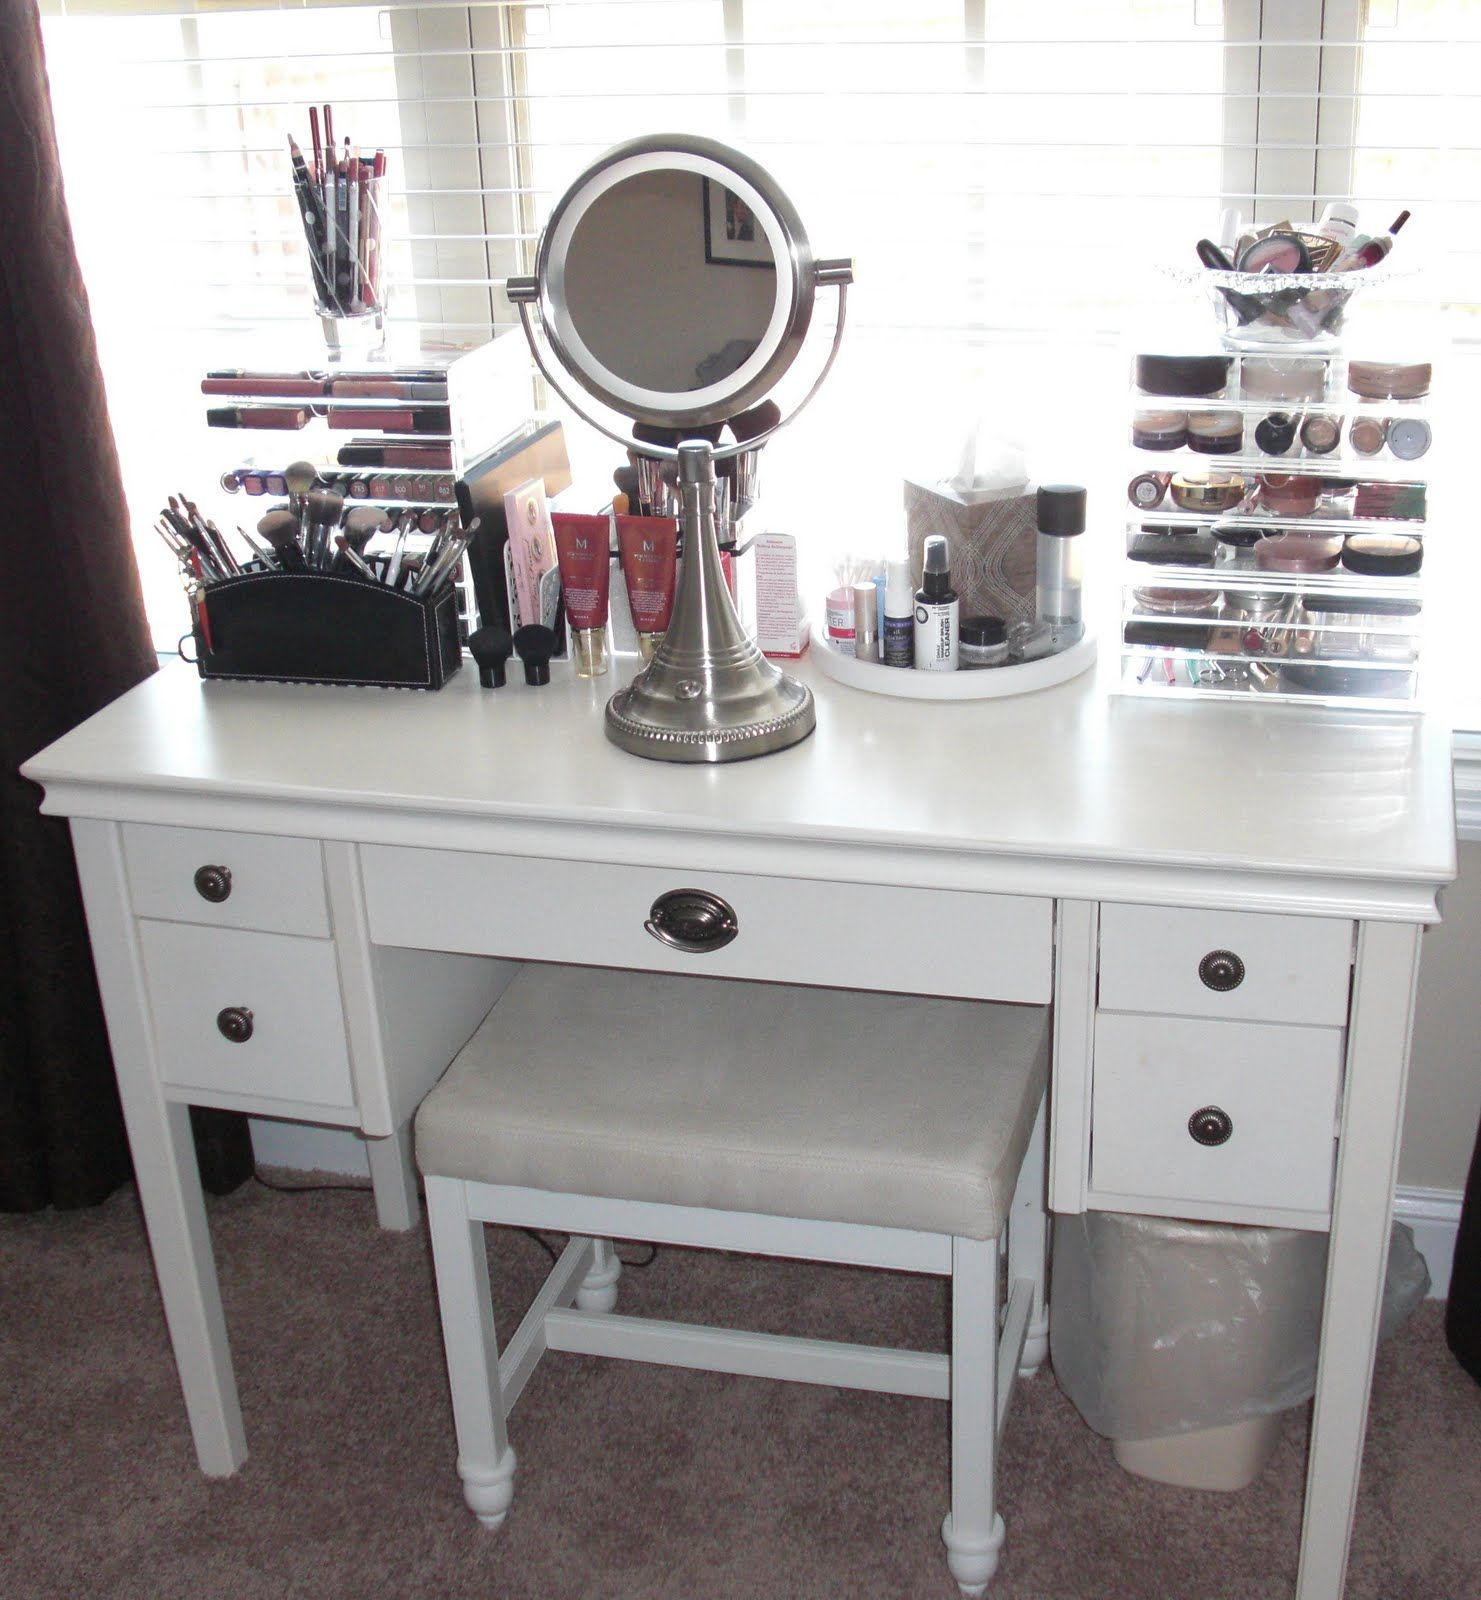 I Want A Makeup Vanity Since I M Exploring Makeup And Skin Care